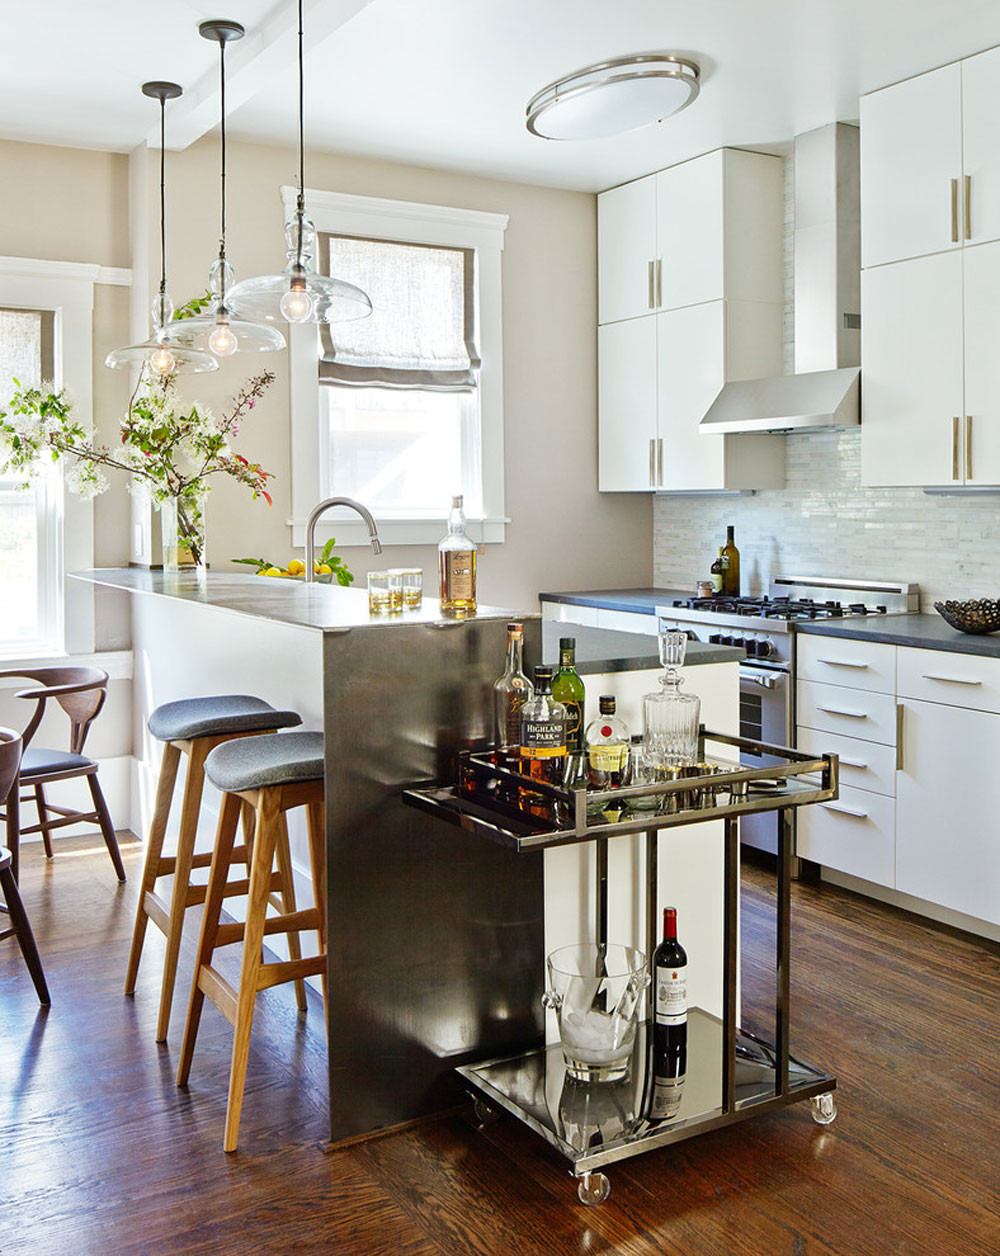 How to organize and decorate a small apartment kitchen